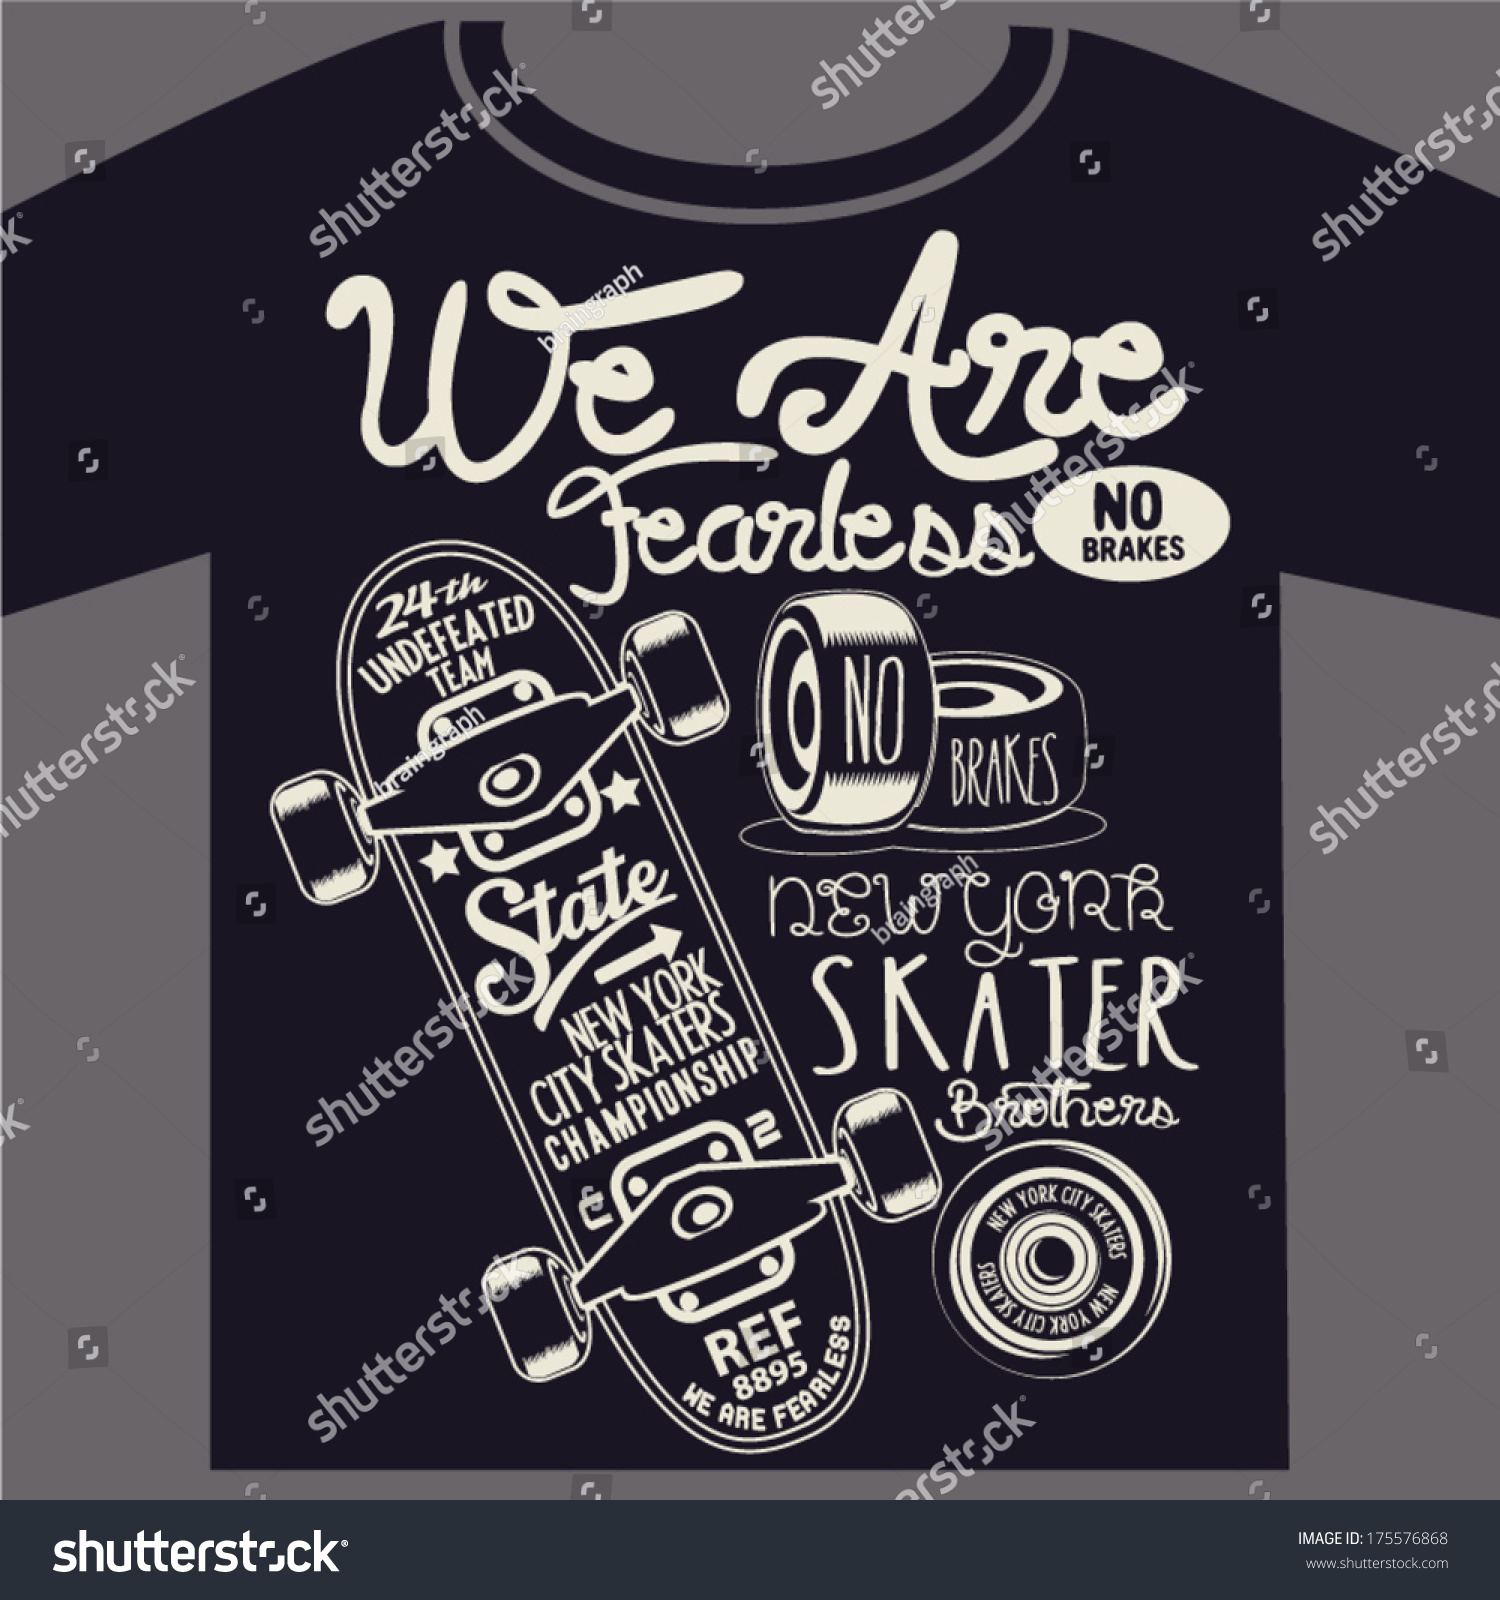 Skateboard graphic design tshirt stock vector 175576868 for Graphic designs for t shirts